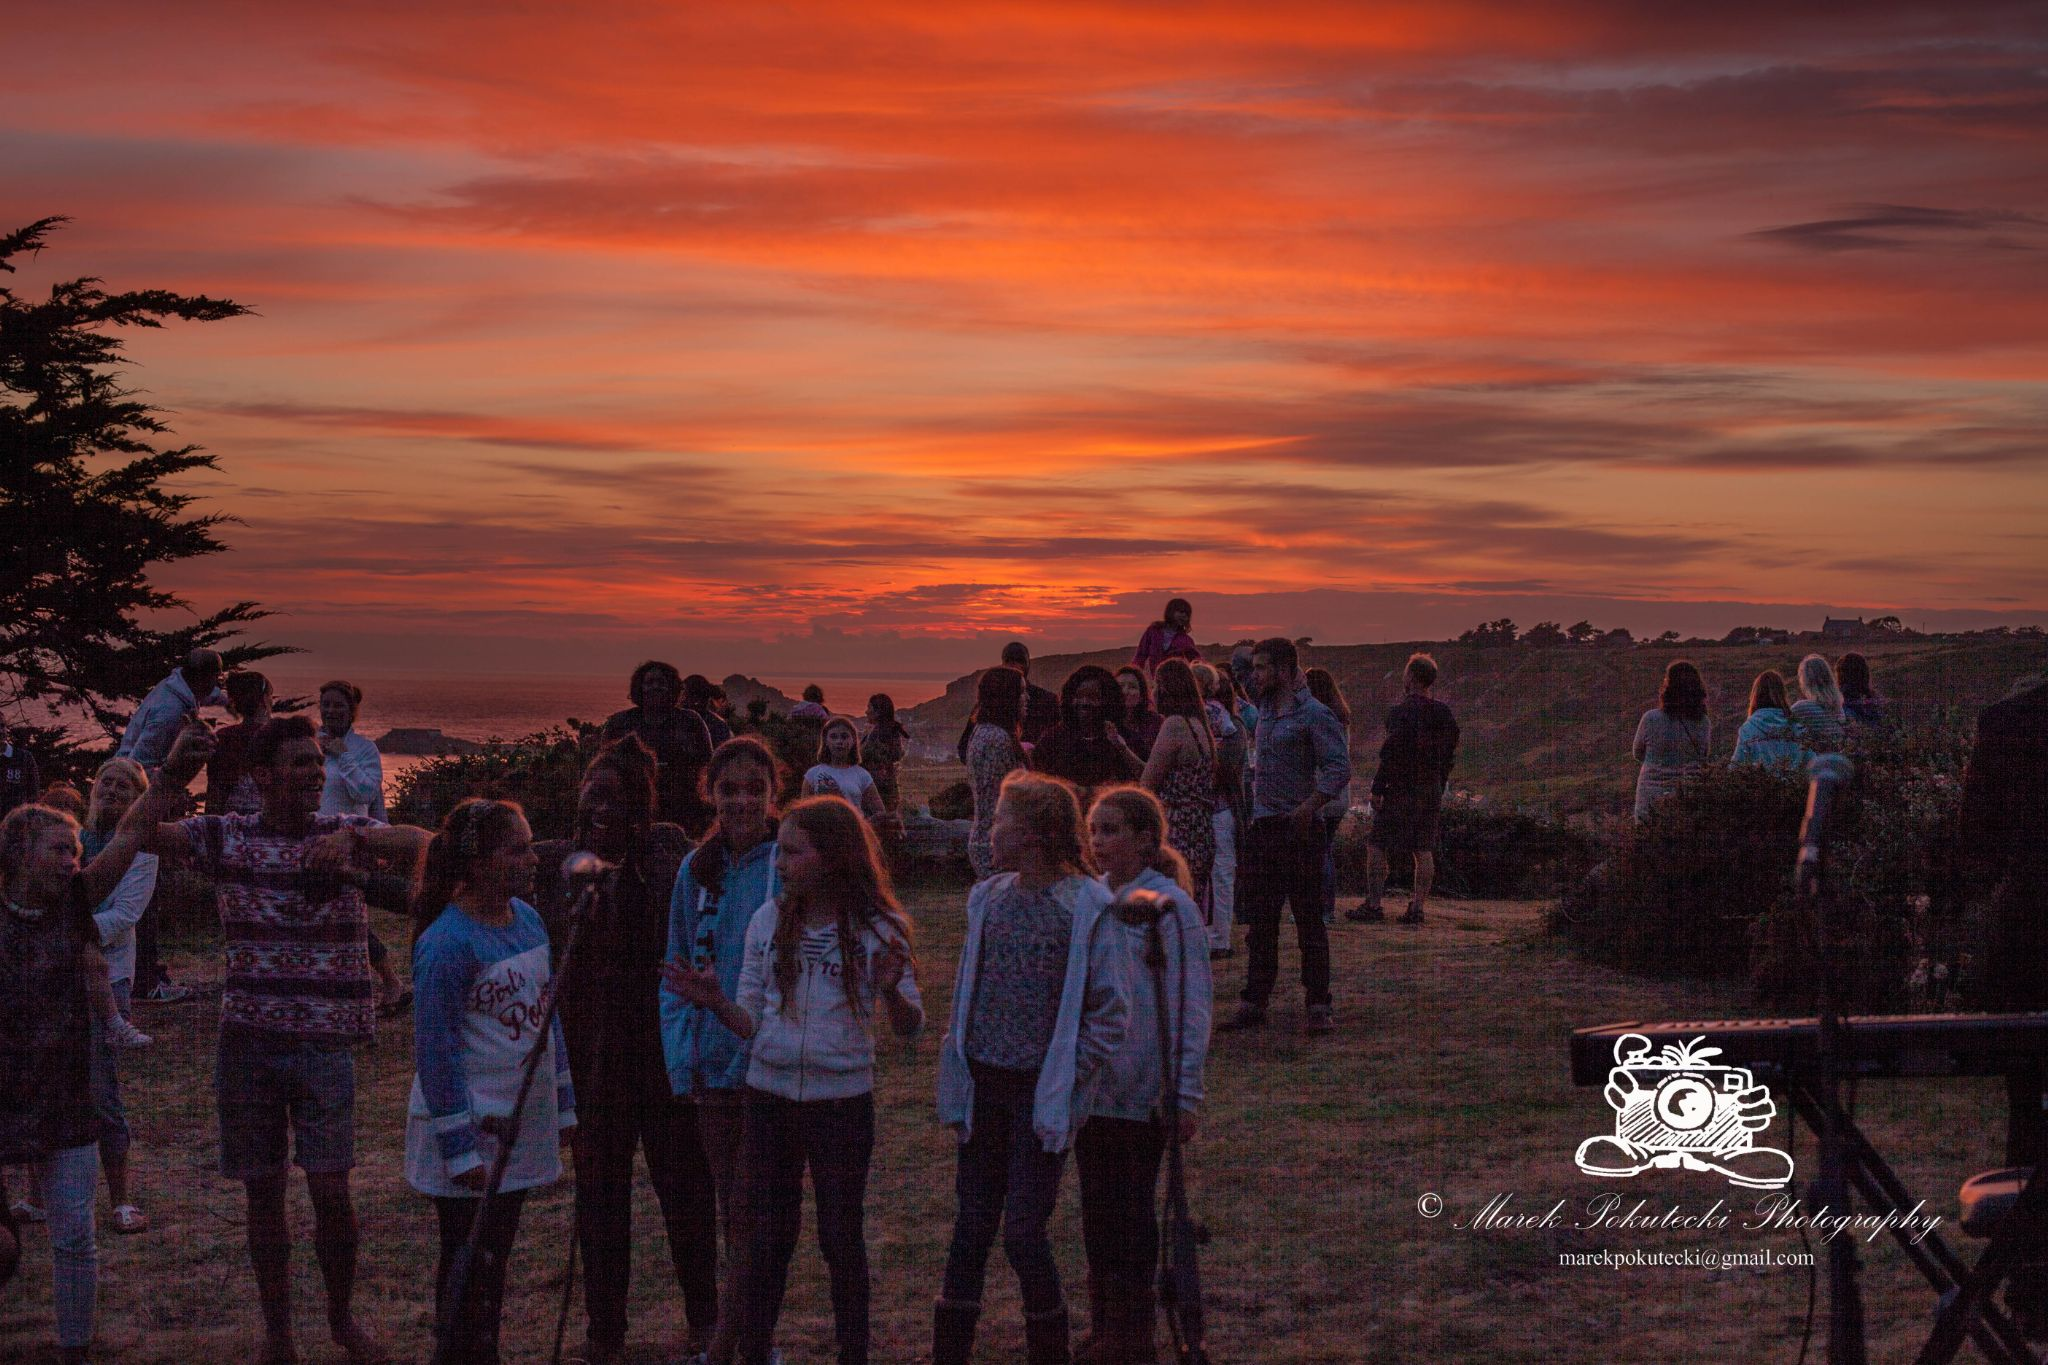 The sunset concert Jersey 2014 by Marek Pokutecki